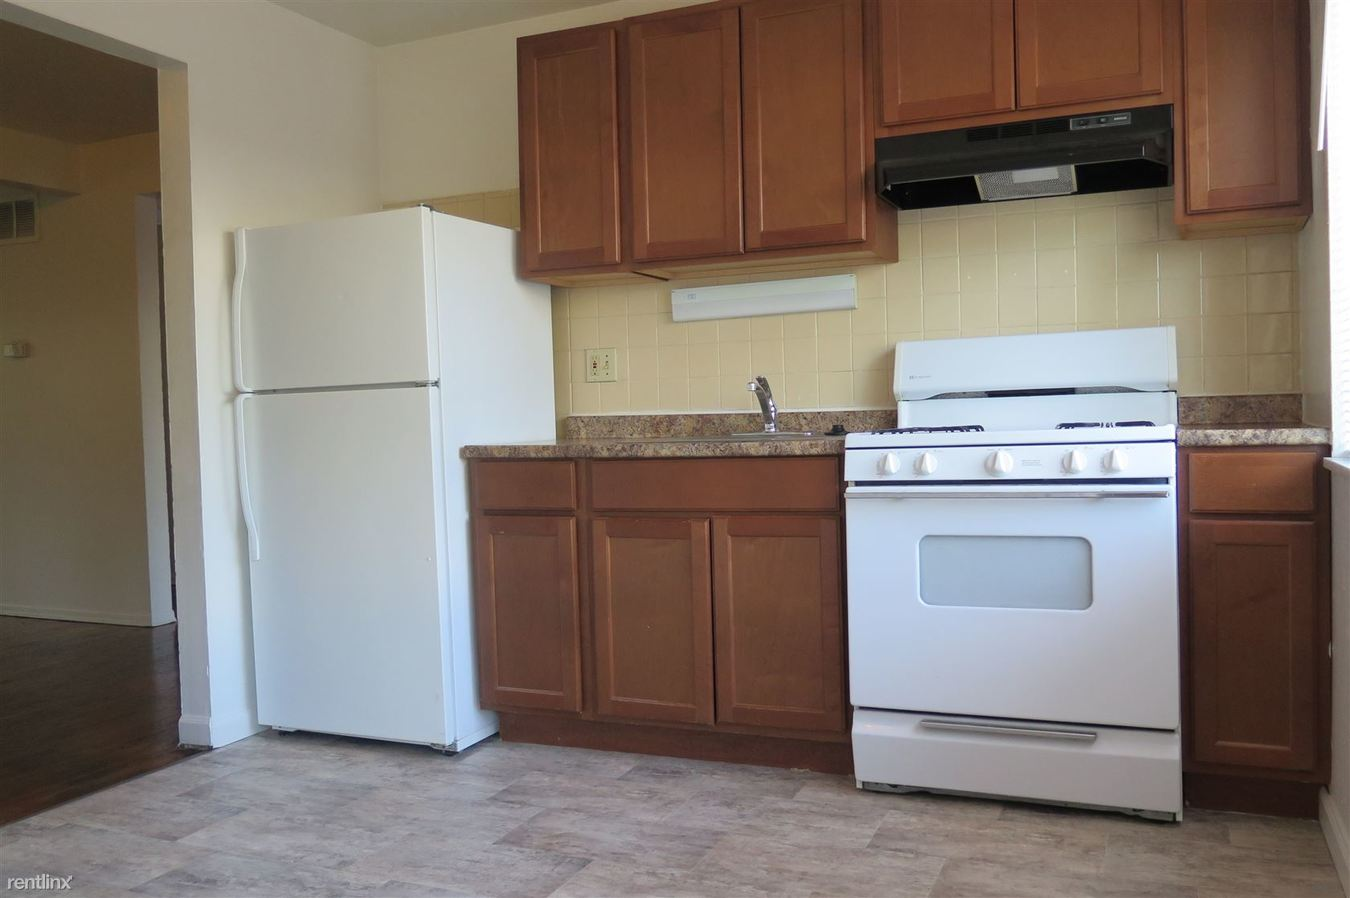 2 Bedrooms 1 Bathroom Apartment for rent at Hazelwood Meadows in Hazelwood, MO